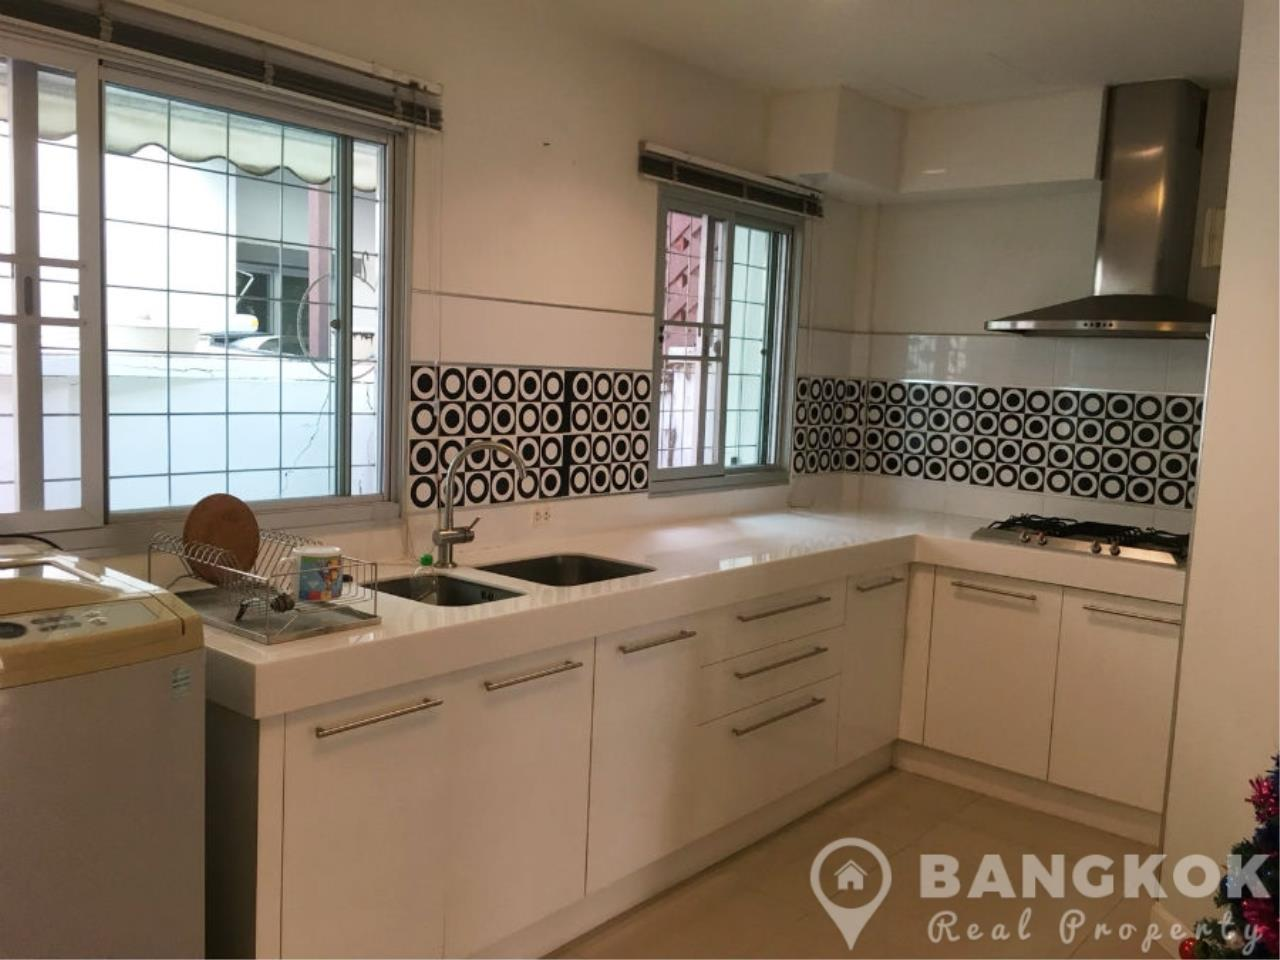 Bangkok Real Property Agency's Modern Udomsuk Townhouse with 3 Bed 3 Bath in Secure Compound 2